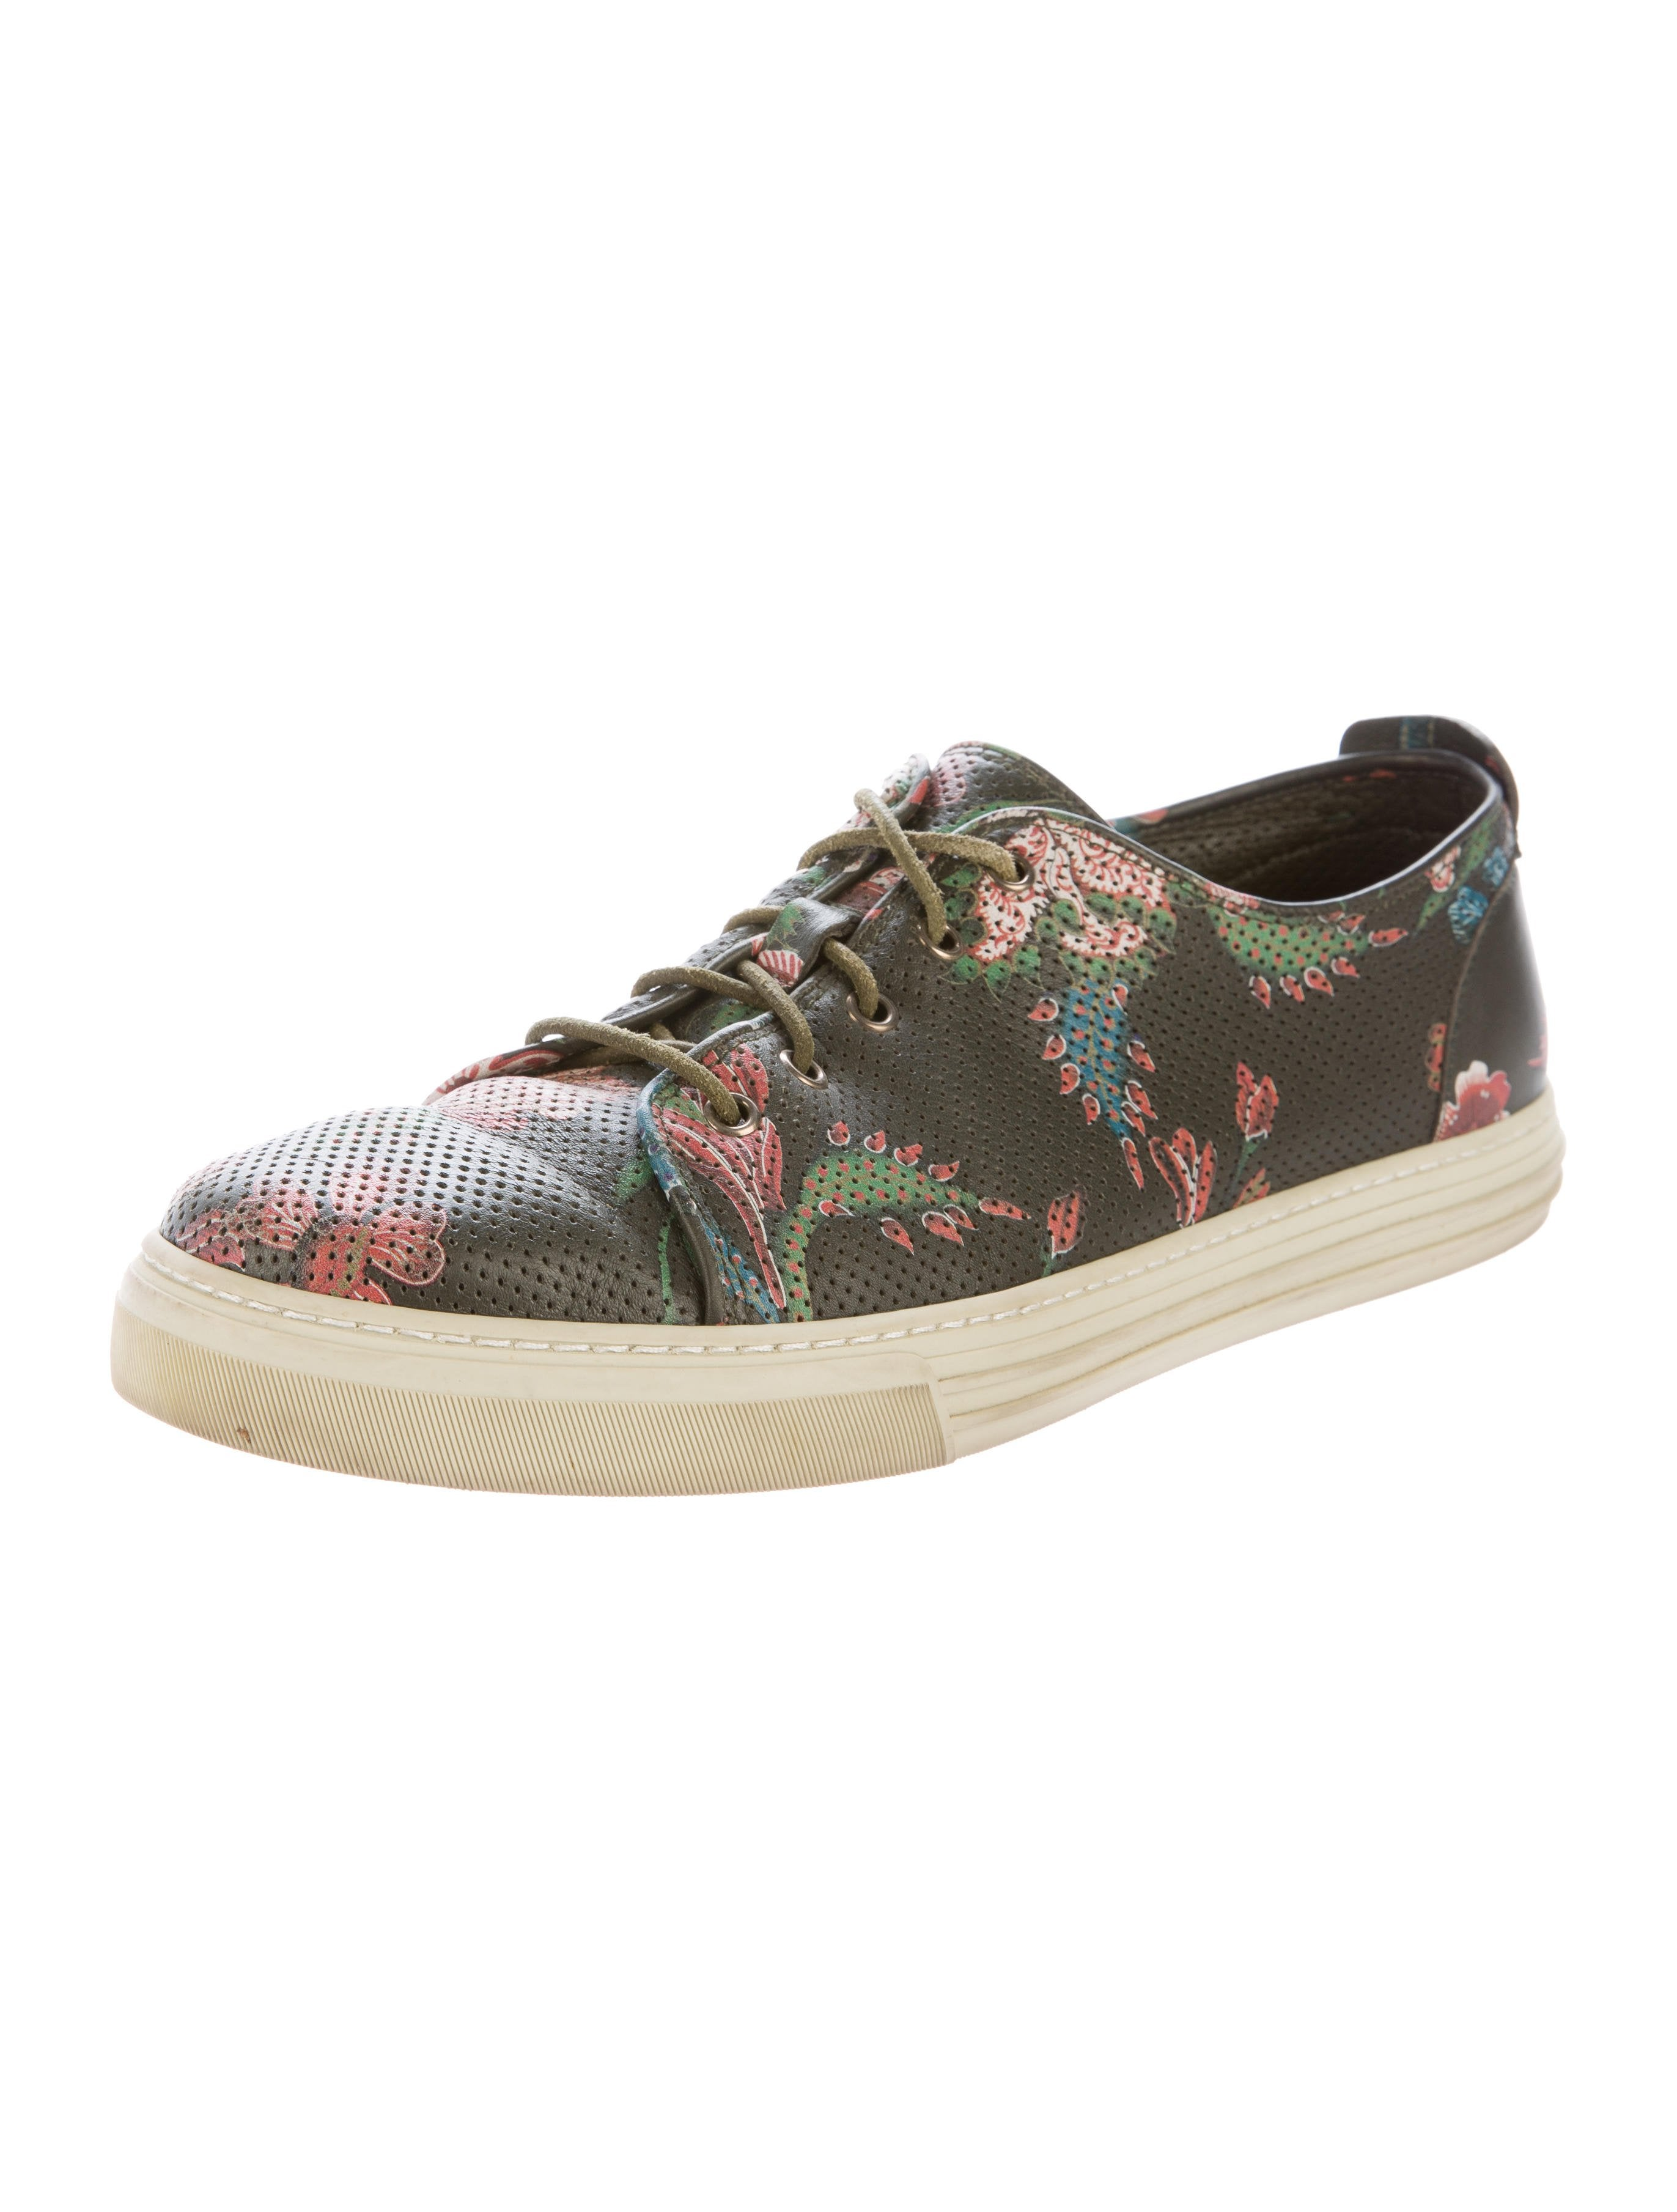 gucci leather floral sneakers - shoes